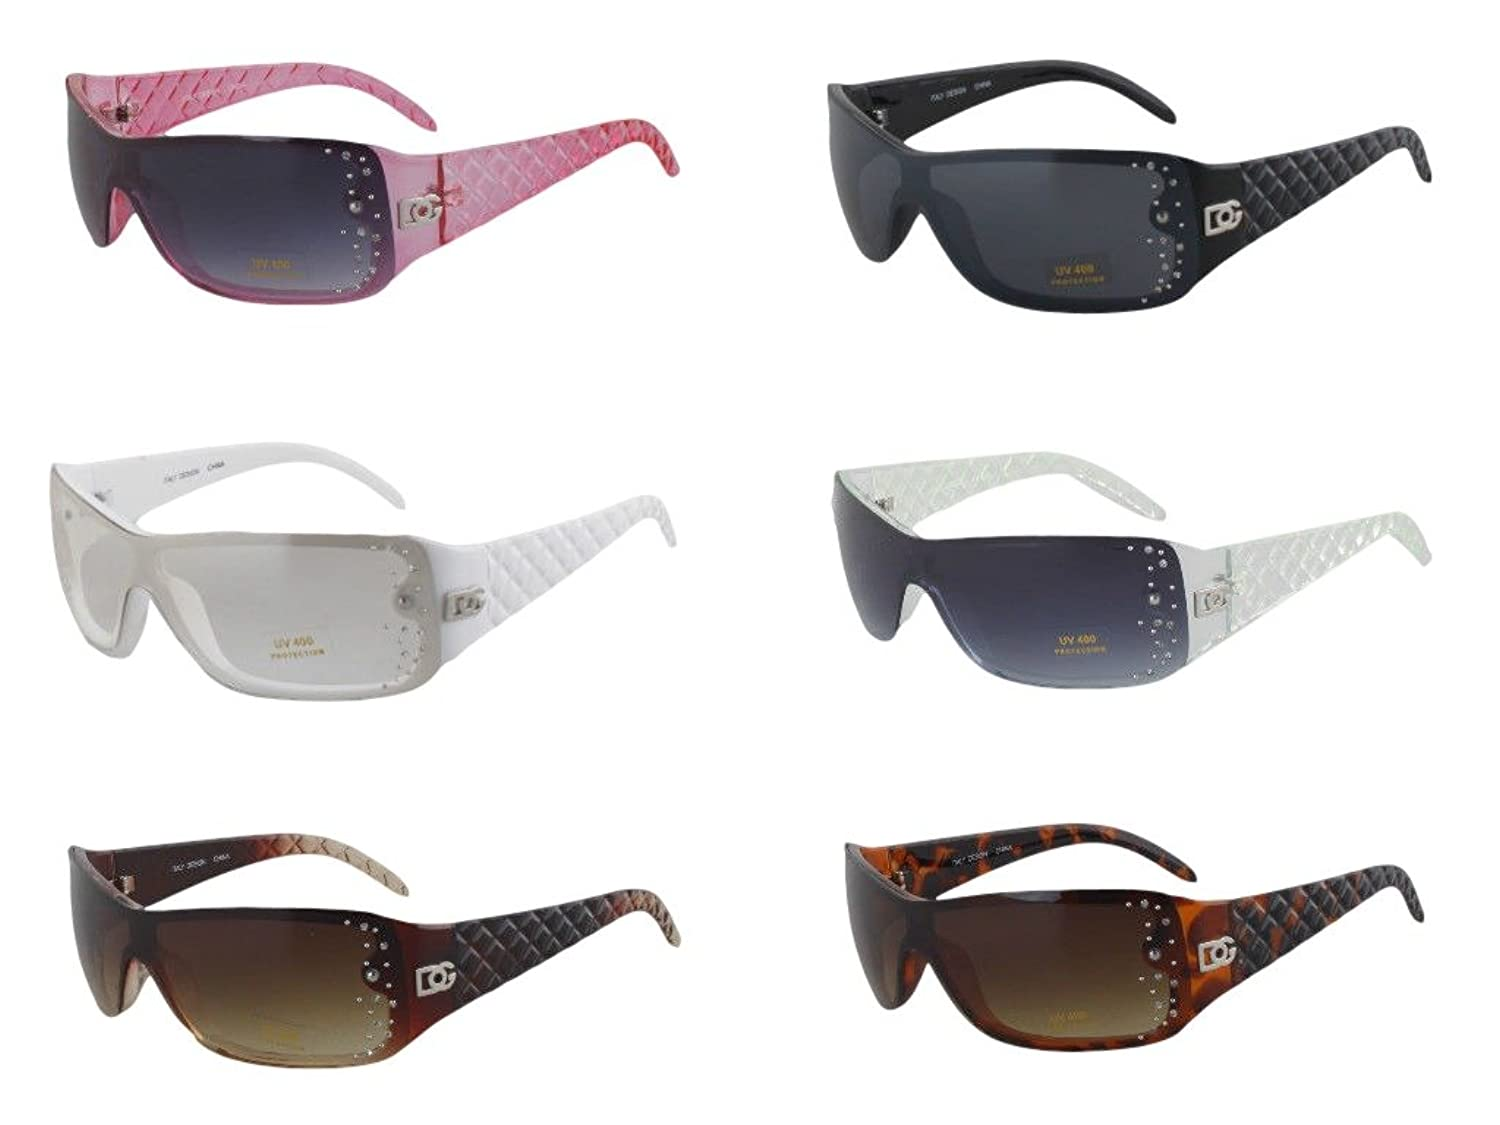 1f98ff351 wholesale lot New DG Eyewear 12 Pieces Assorted Womens Designer Sunglasses  Shades low-cost